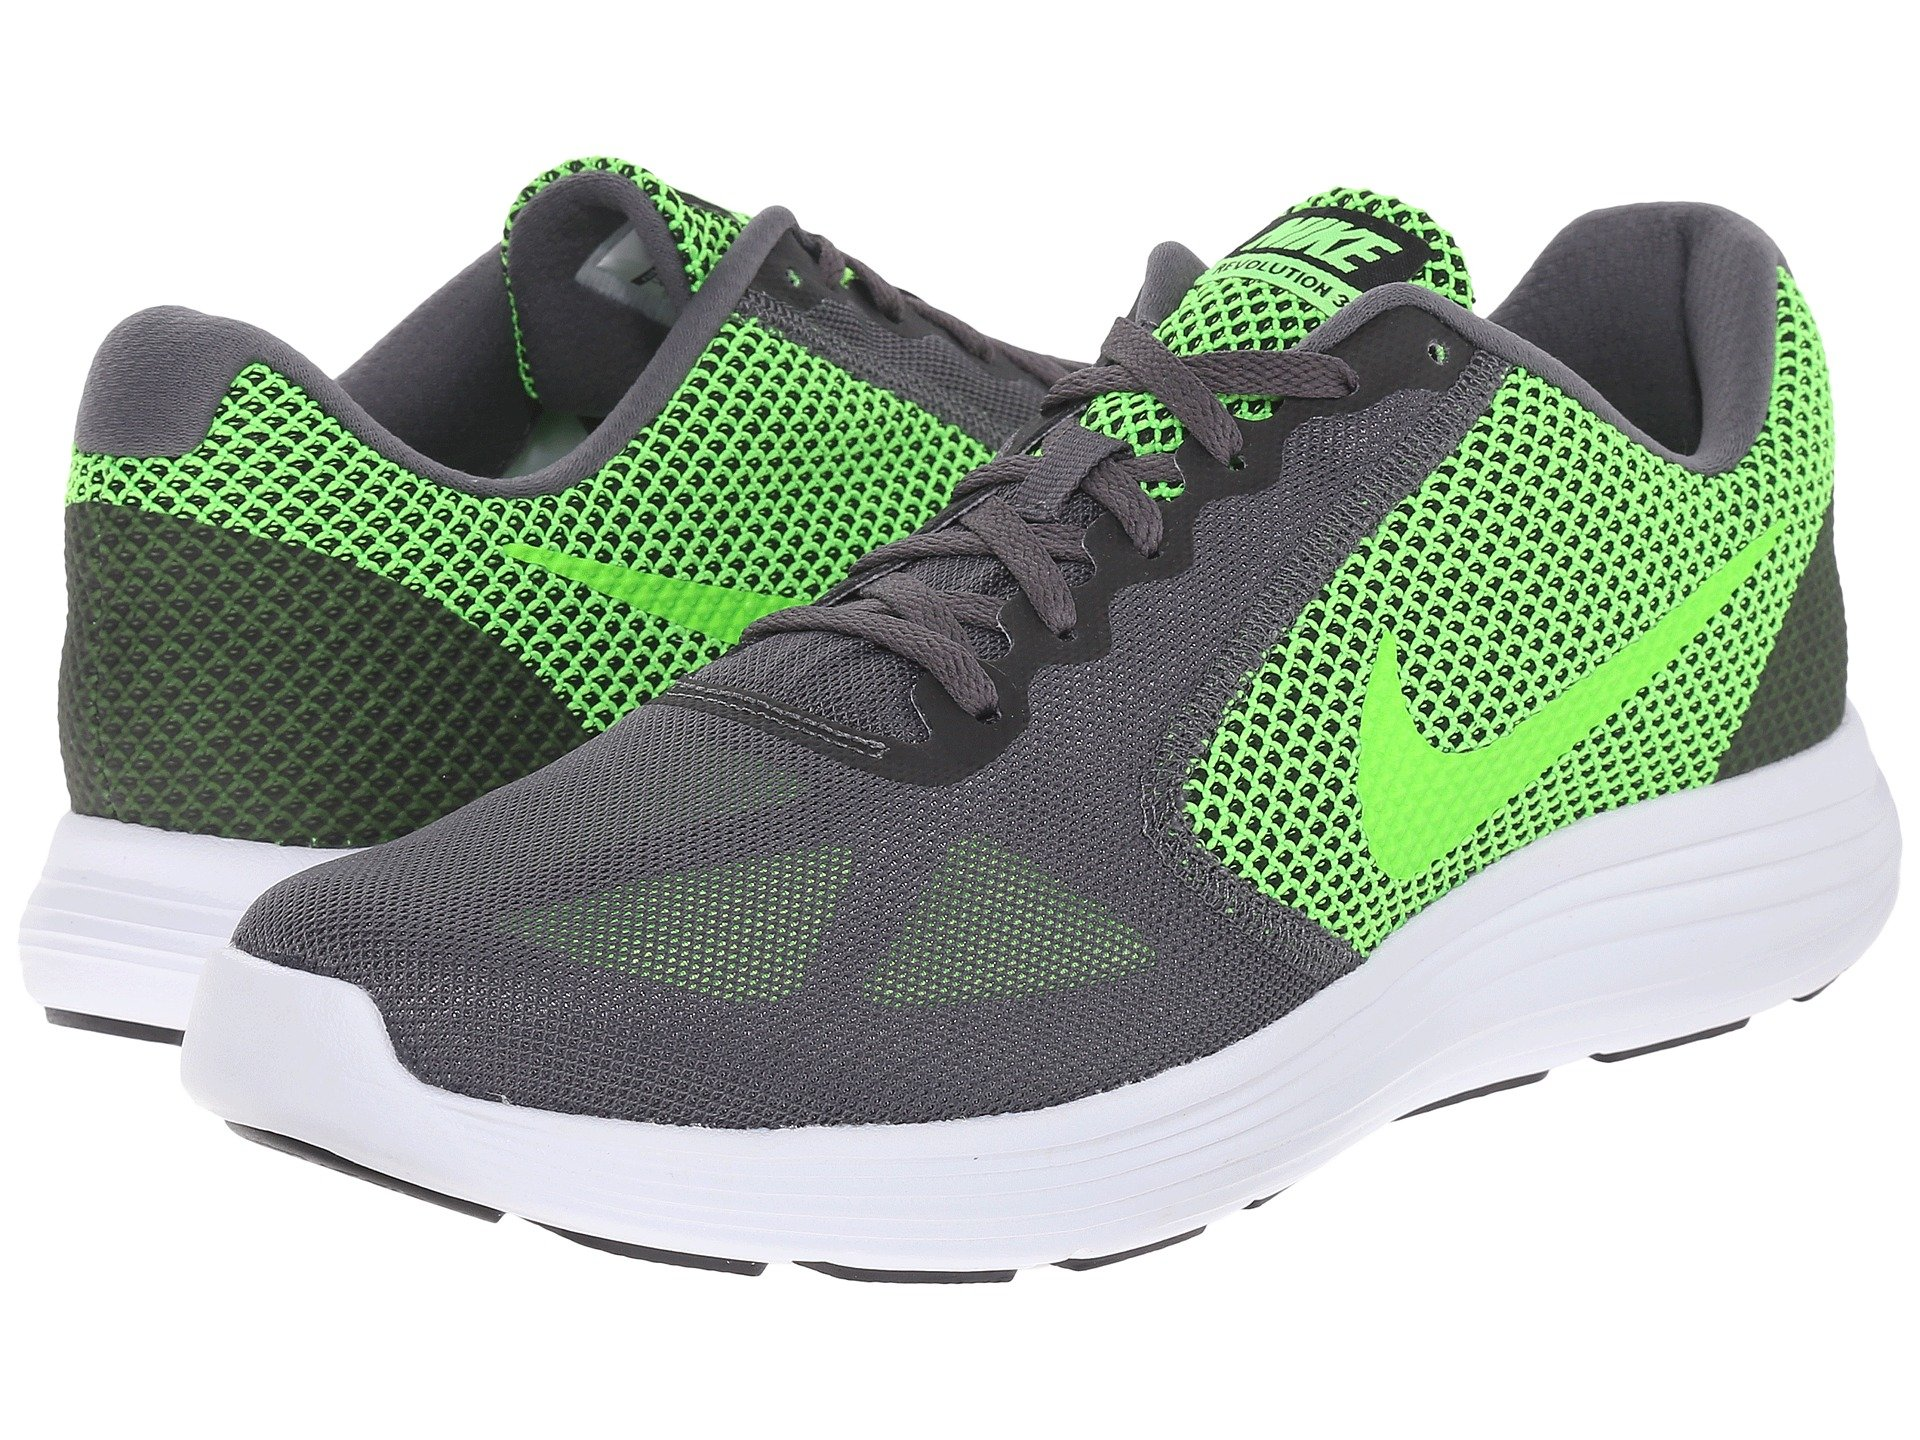 nike green speed 3 shoes